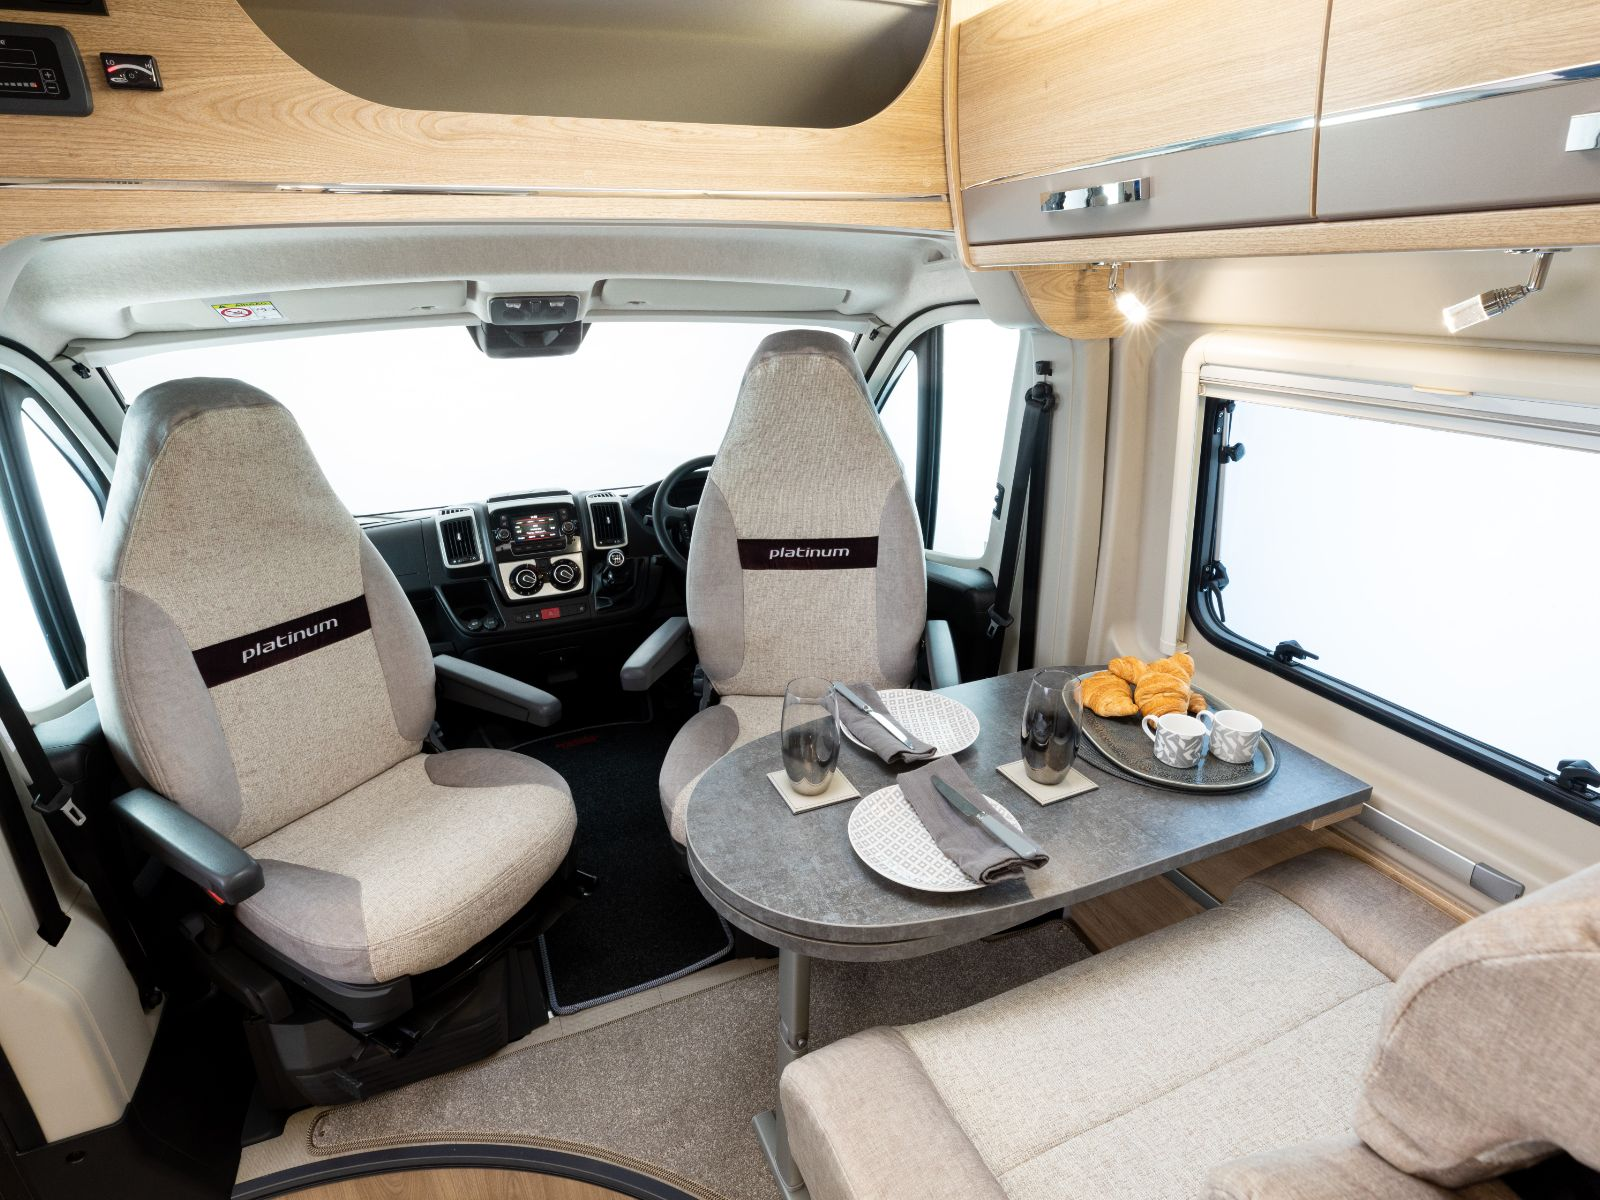 Platinum CV40 Driving Area with Dinette'